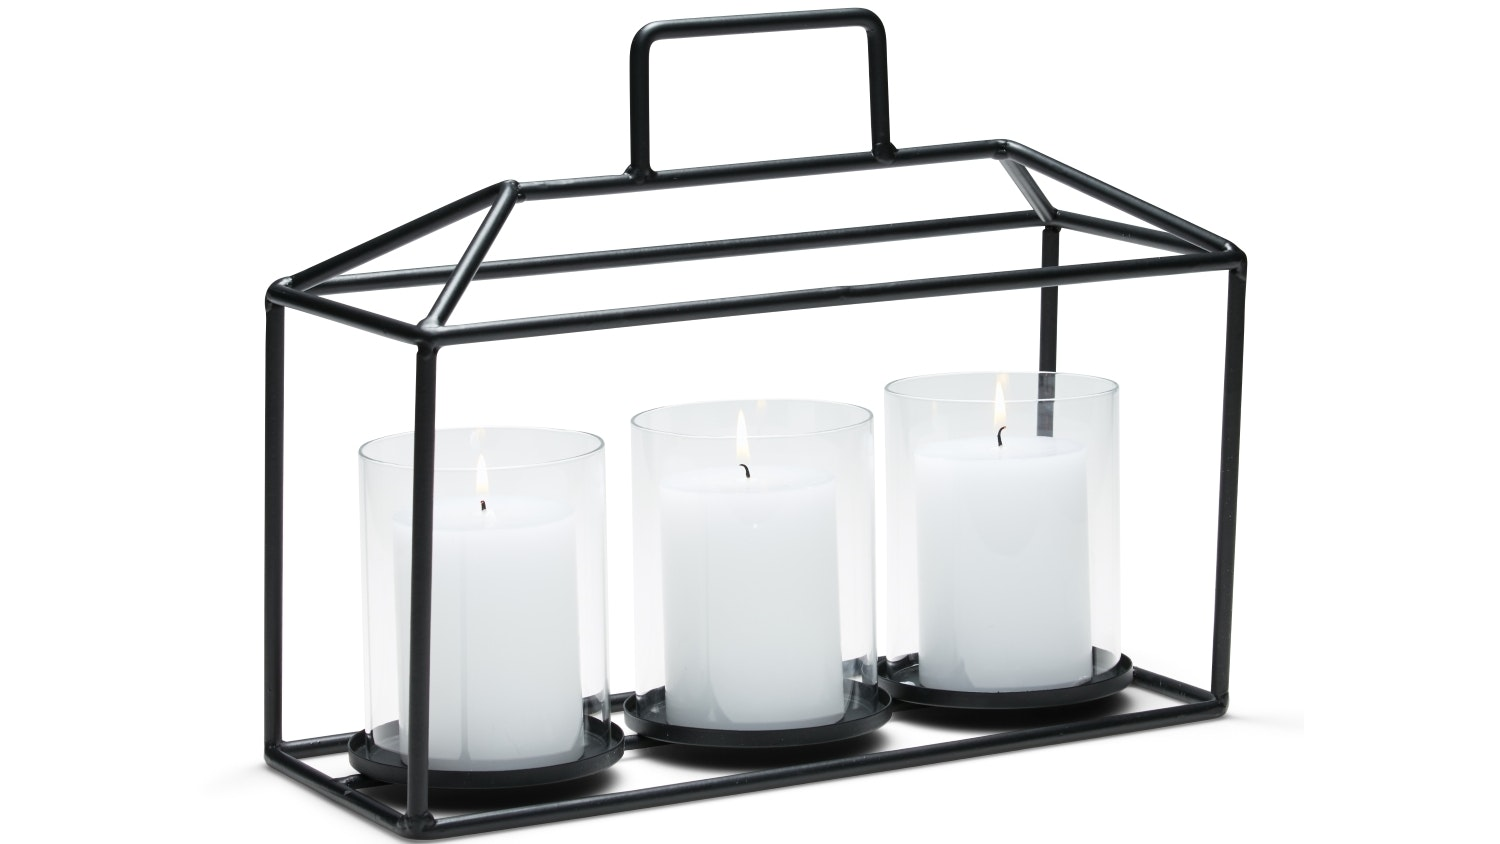 Salt & Pepper Alfresco Large Hurricane Candle Holder